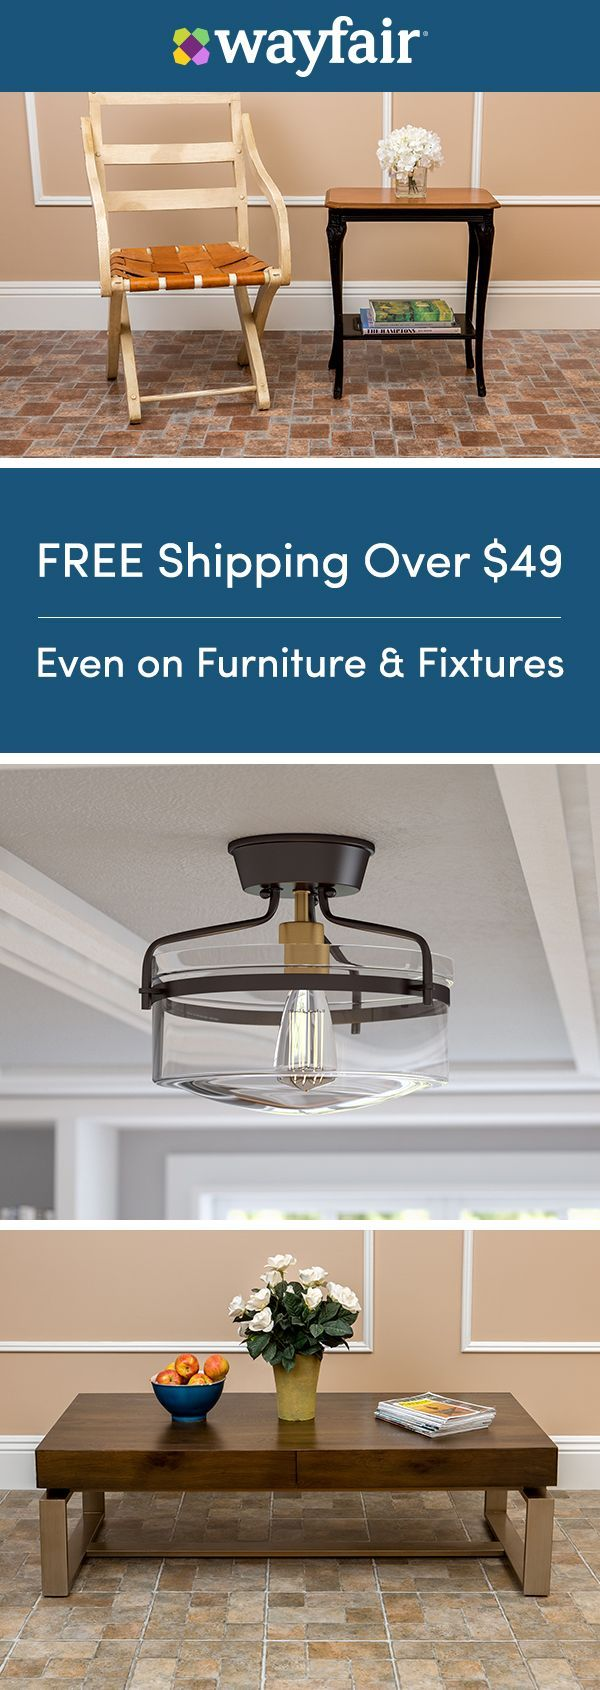 Sign up for access to exclusive sales, all at up to 70% OFF!  Turn your basement into you bonus room with our impressive selection of furniture, storage, and more. Transform this dull space into anything you want it to be, for way way less. And as always, enjoy FREE shipping on all orders over $49 at Wayfair!